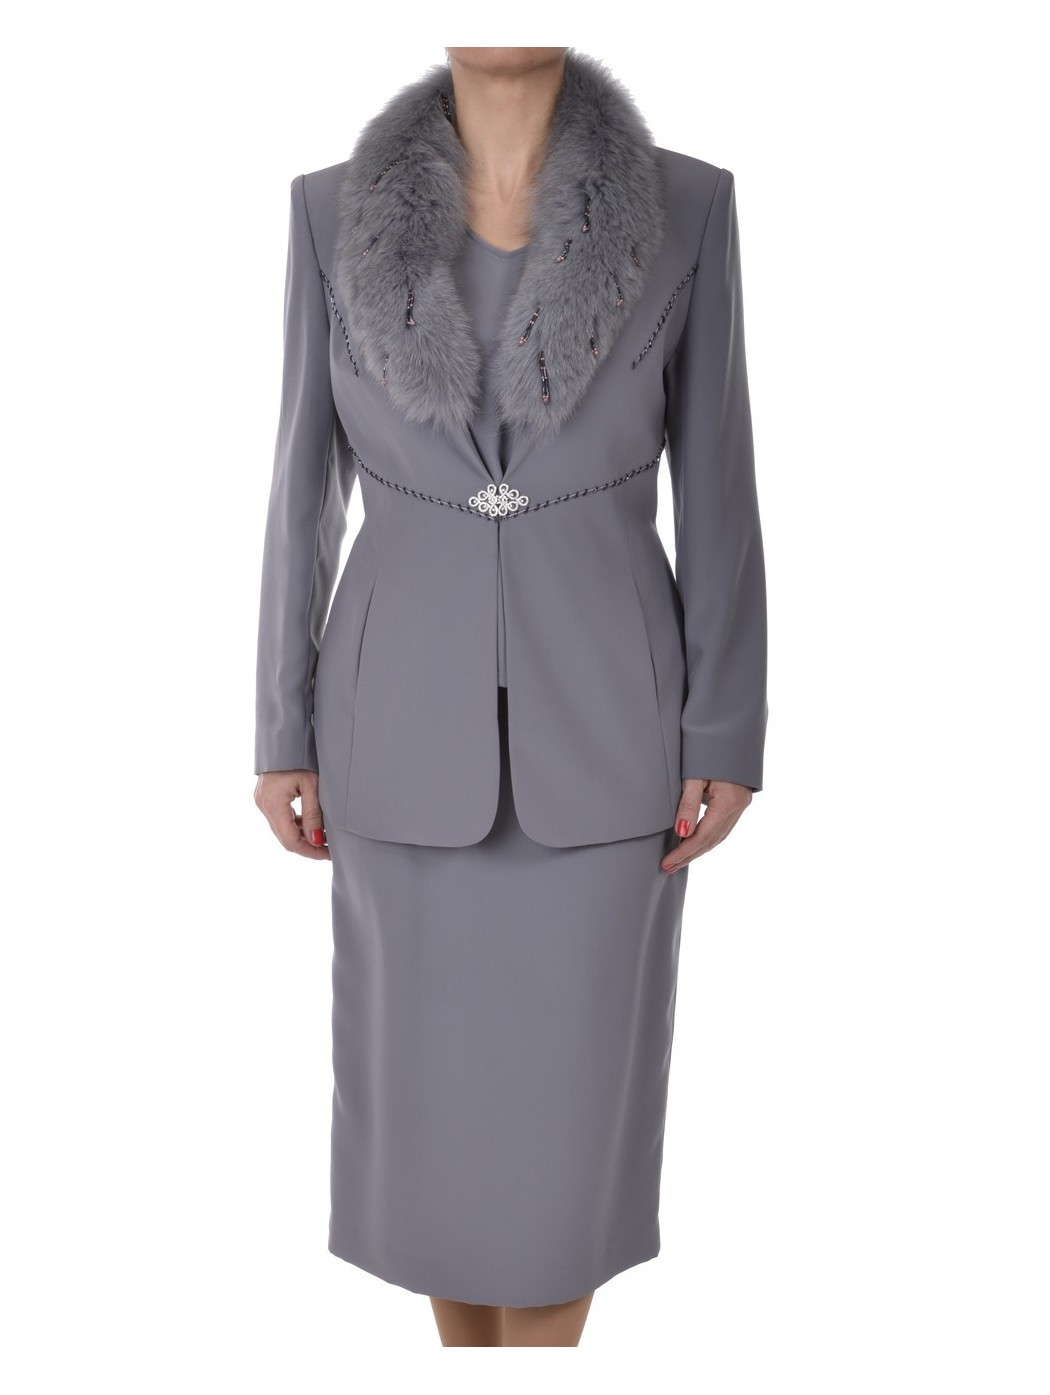 Grey suit with fur collar...